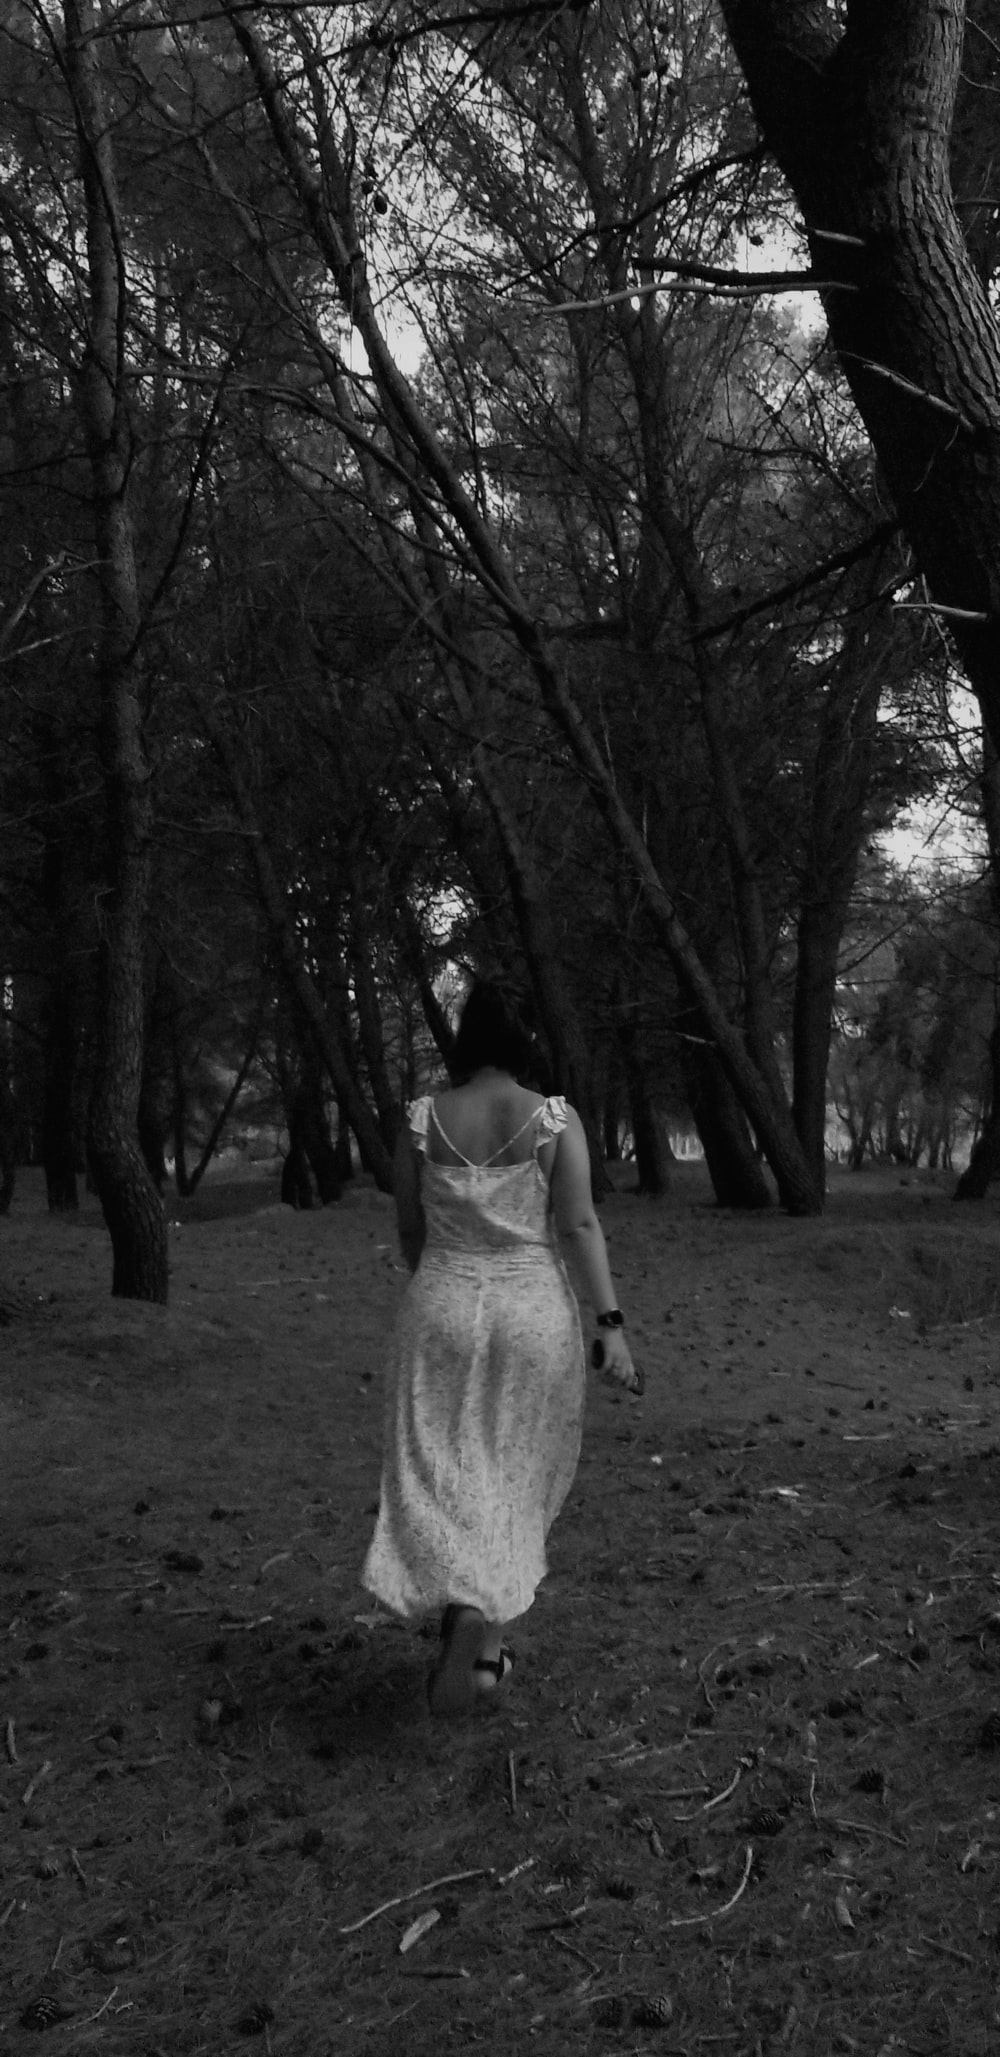 grayscale photography of woman walking surrounded by trees